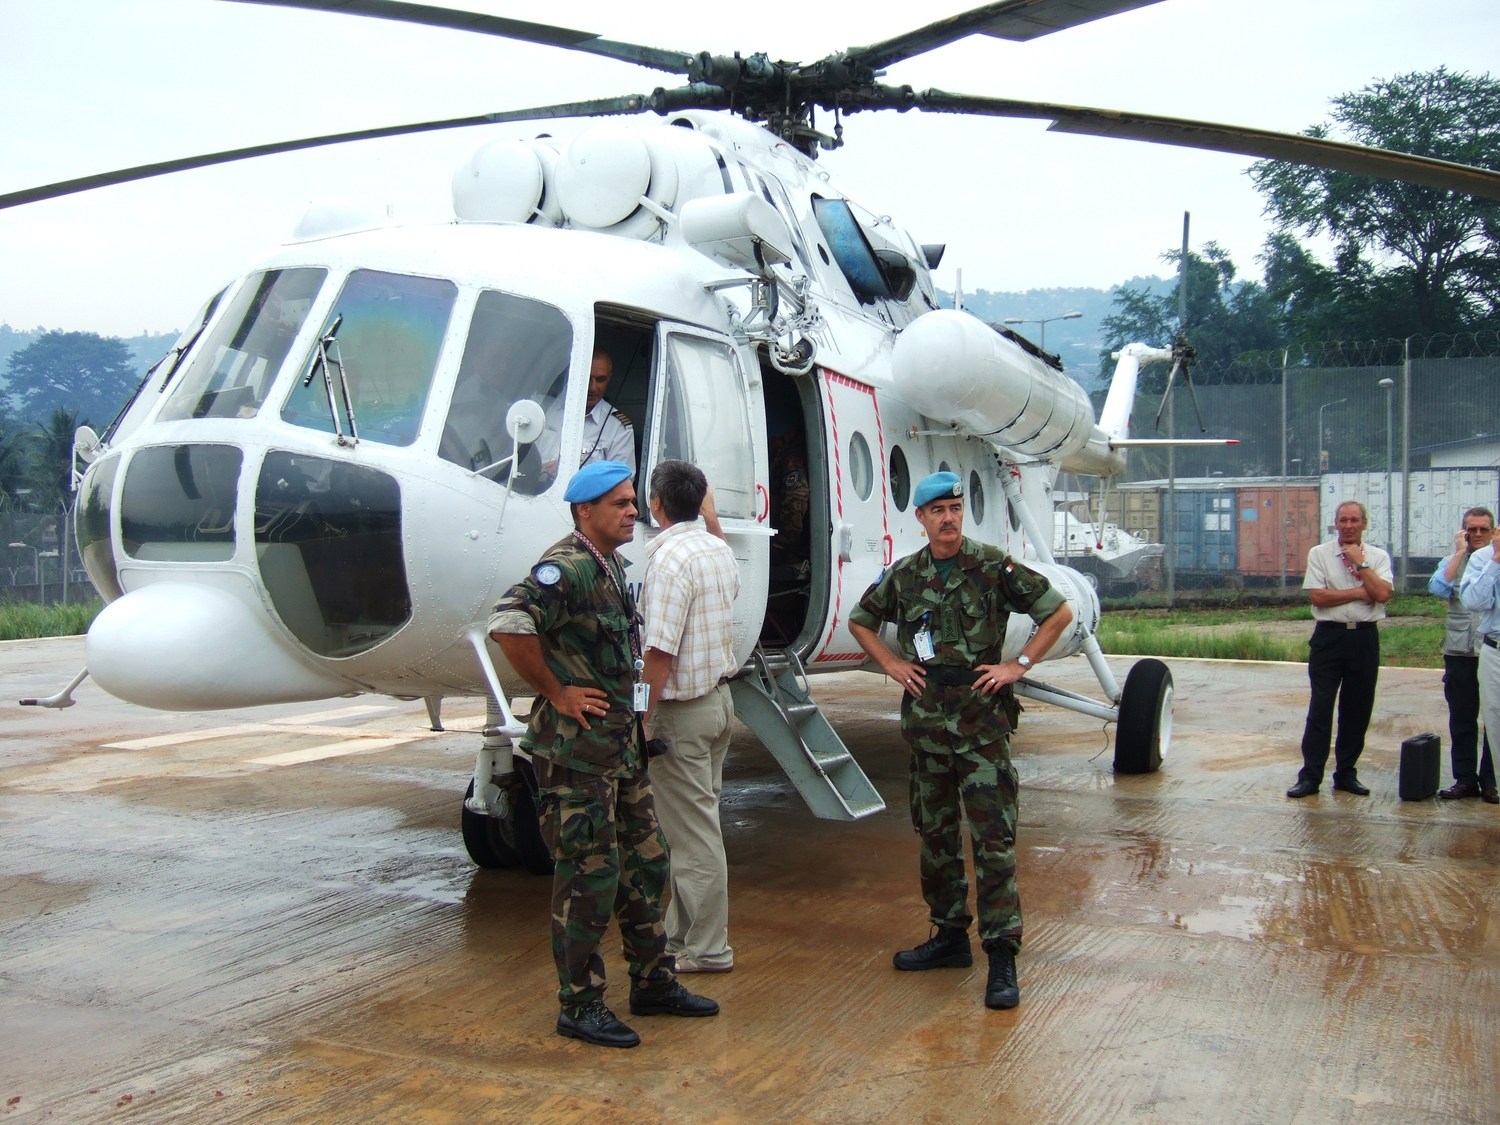 Pakenham (right) with Lt Col Goran Novoselic- UNMIL's Deputy Chief Operations Officer (Air) on the tarmac in Sierra Leone